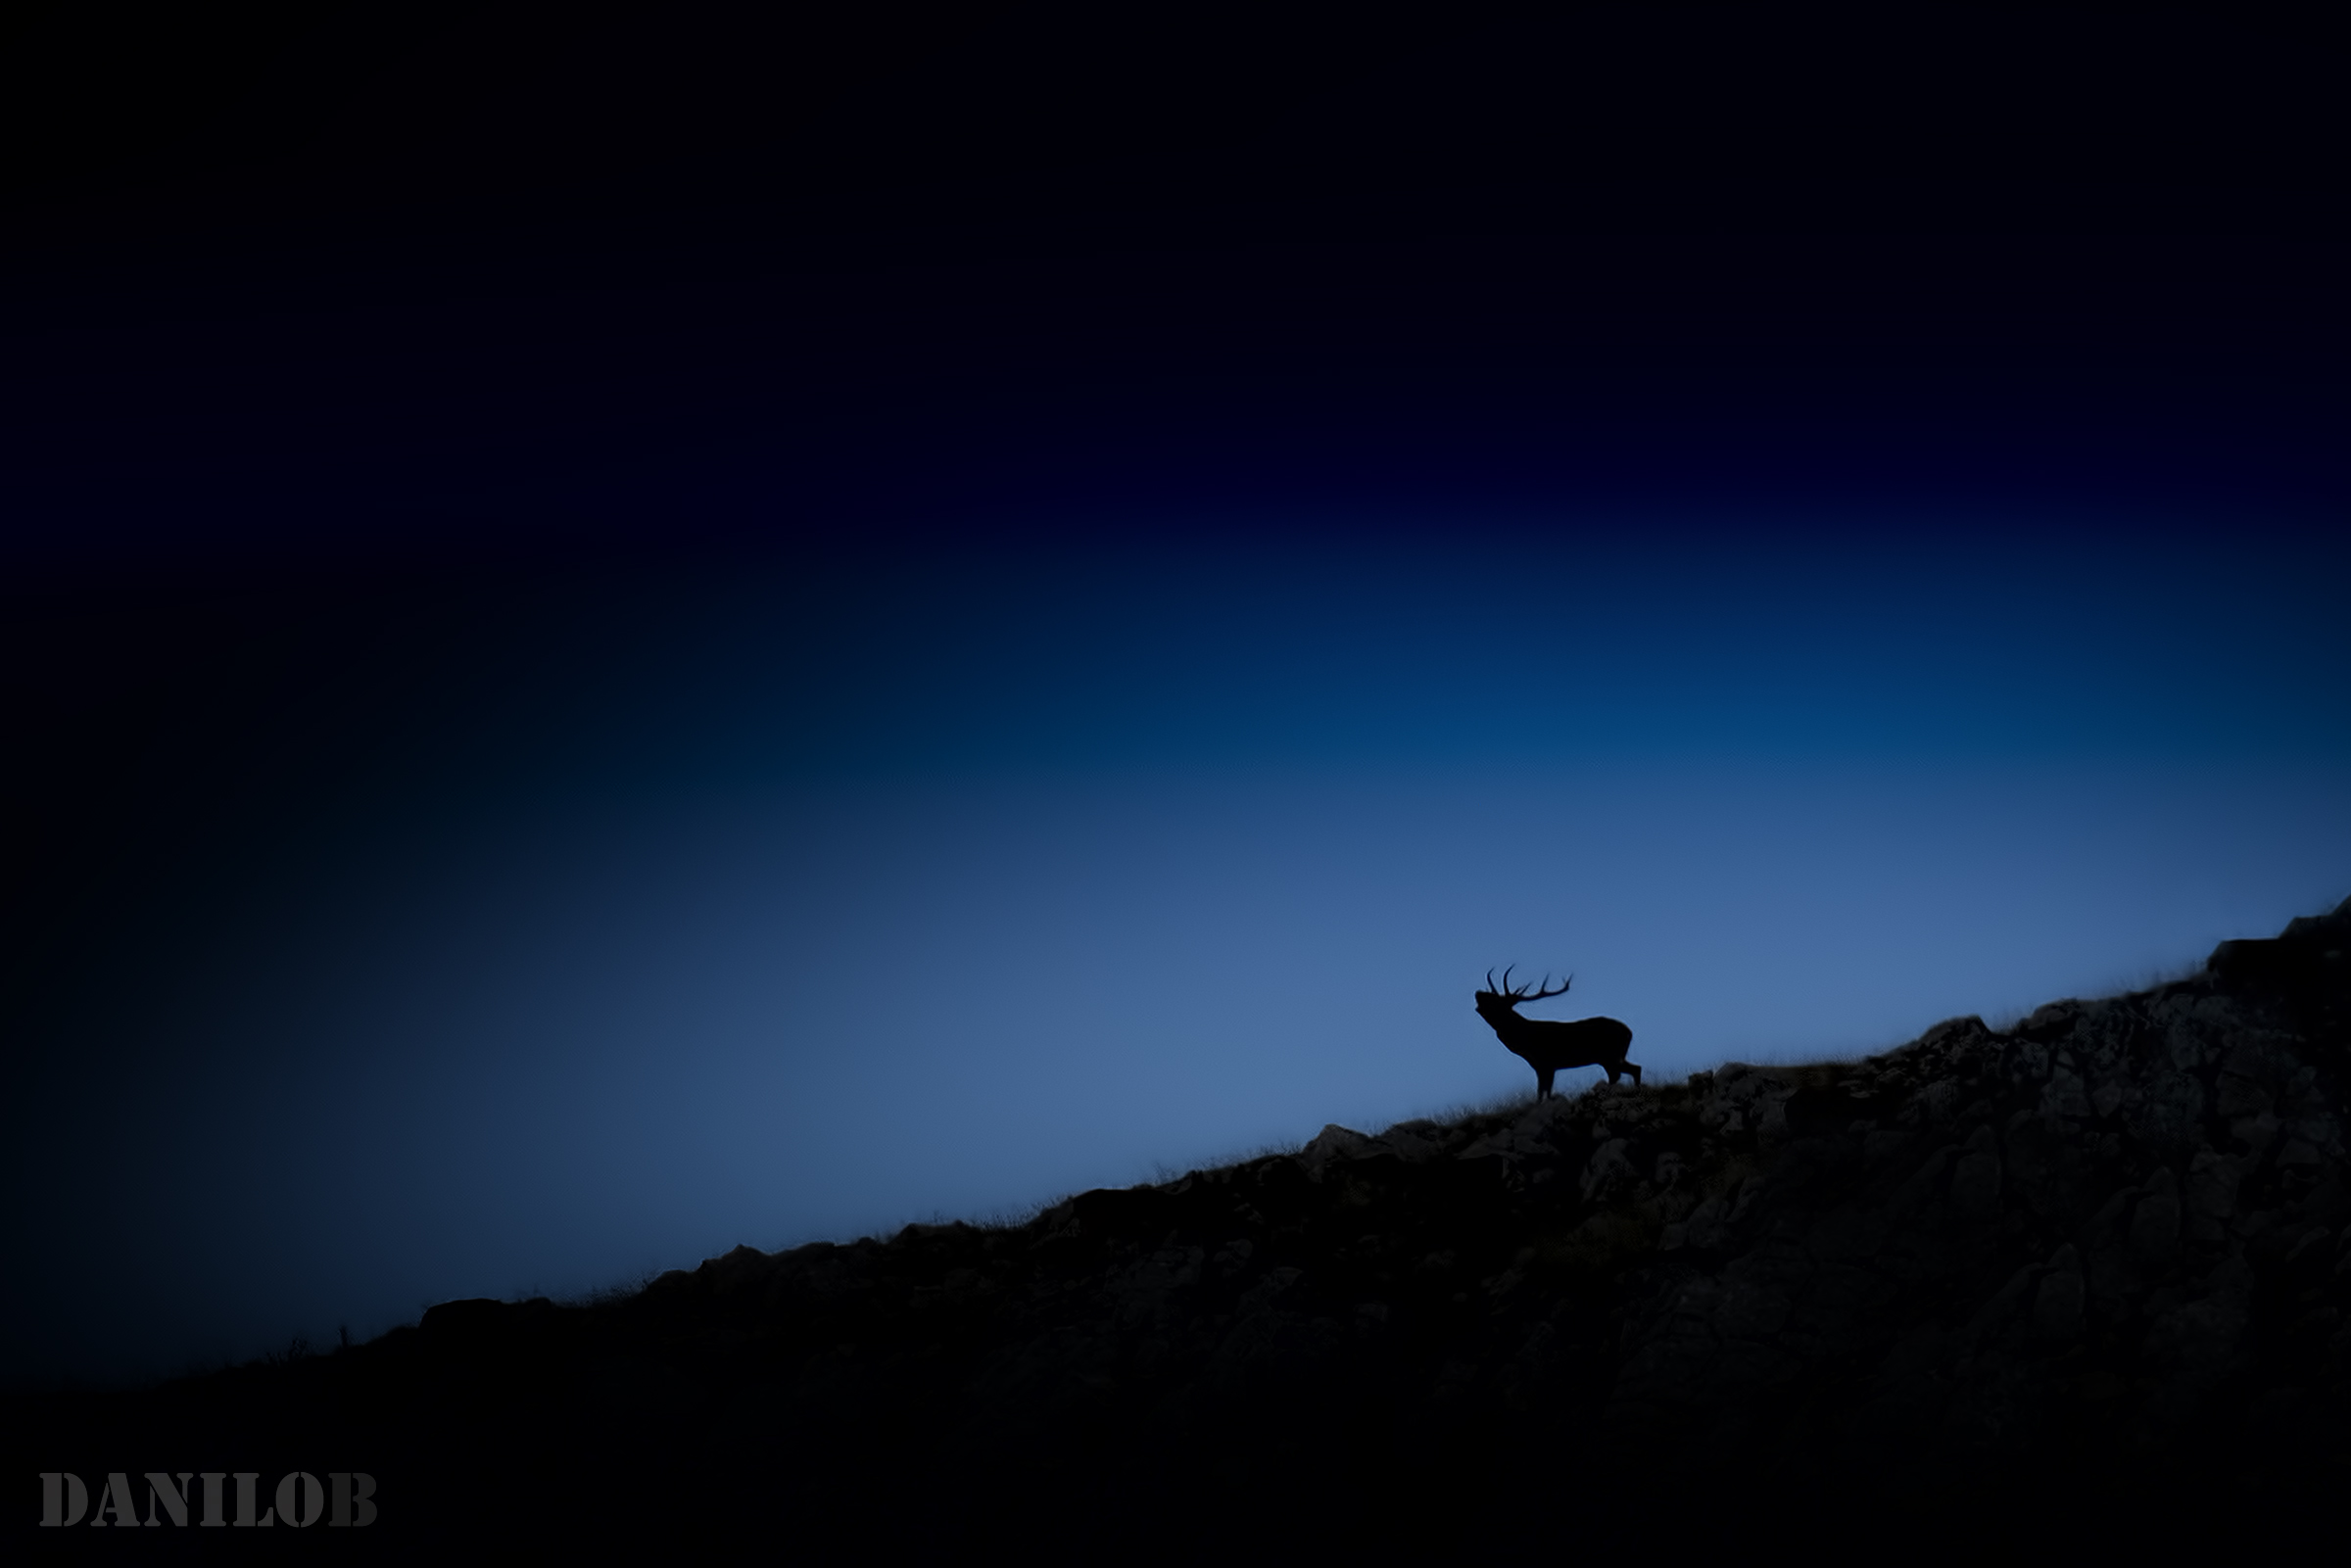 ... at the dusk of a silhouette ......